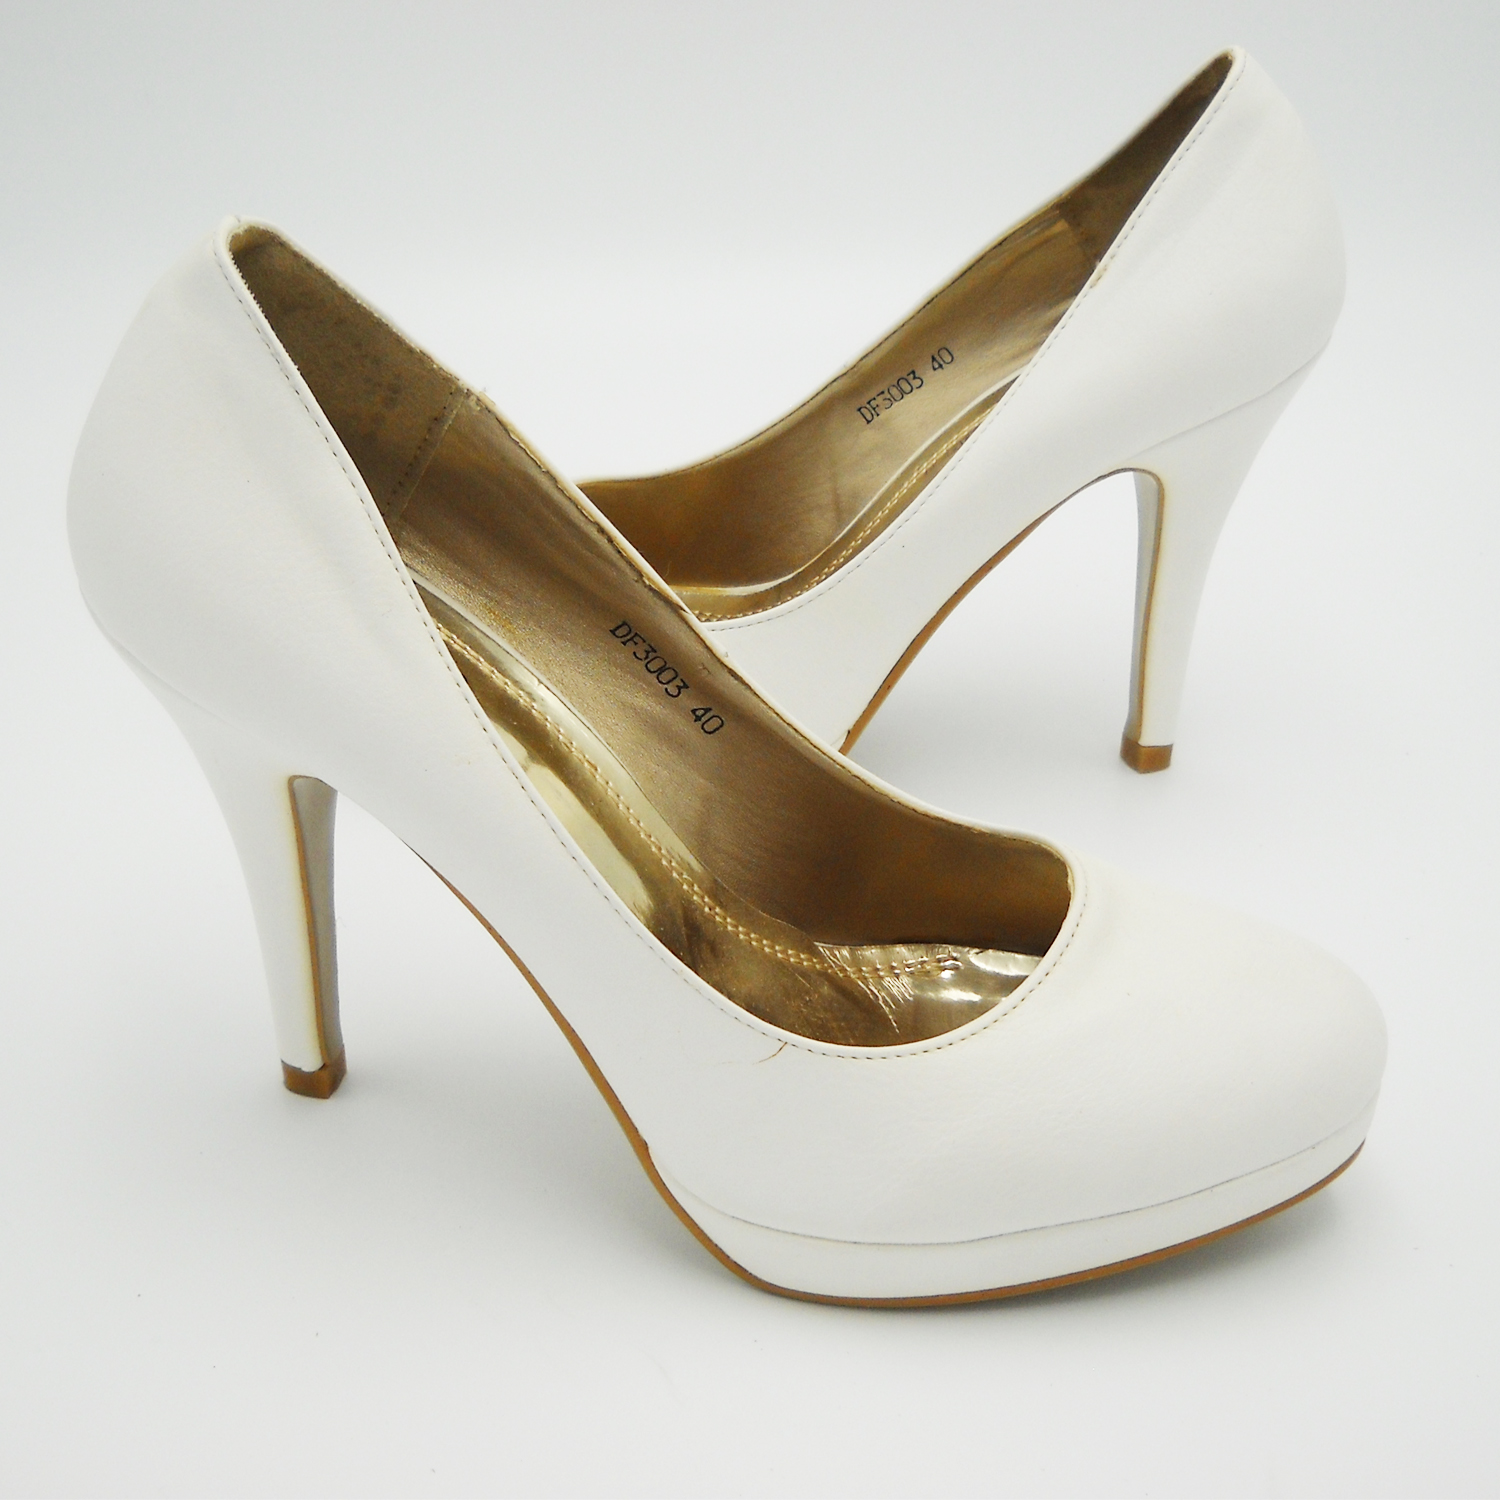 Shoes decolte white dress spiked heel 40 tall wedding woman shoes